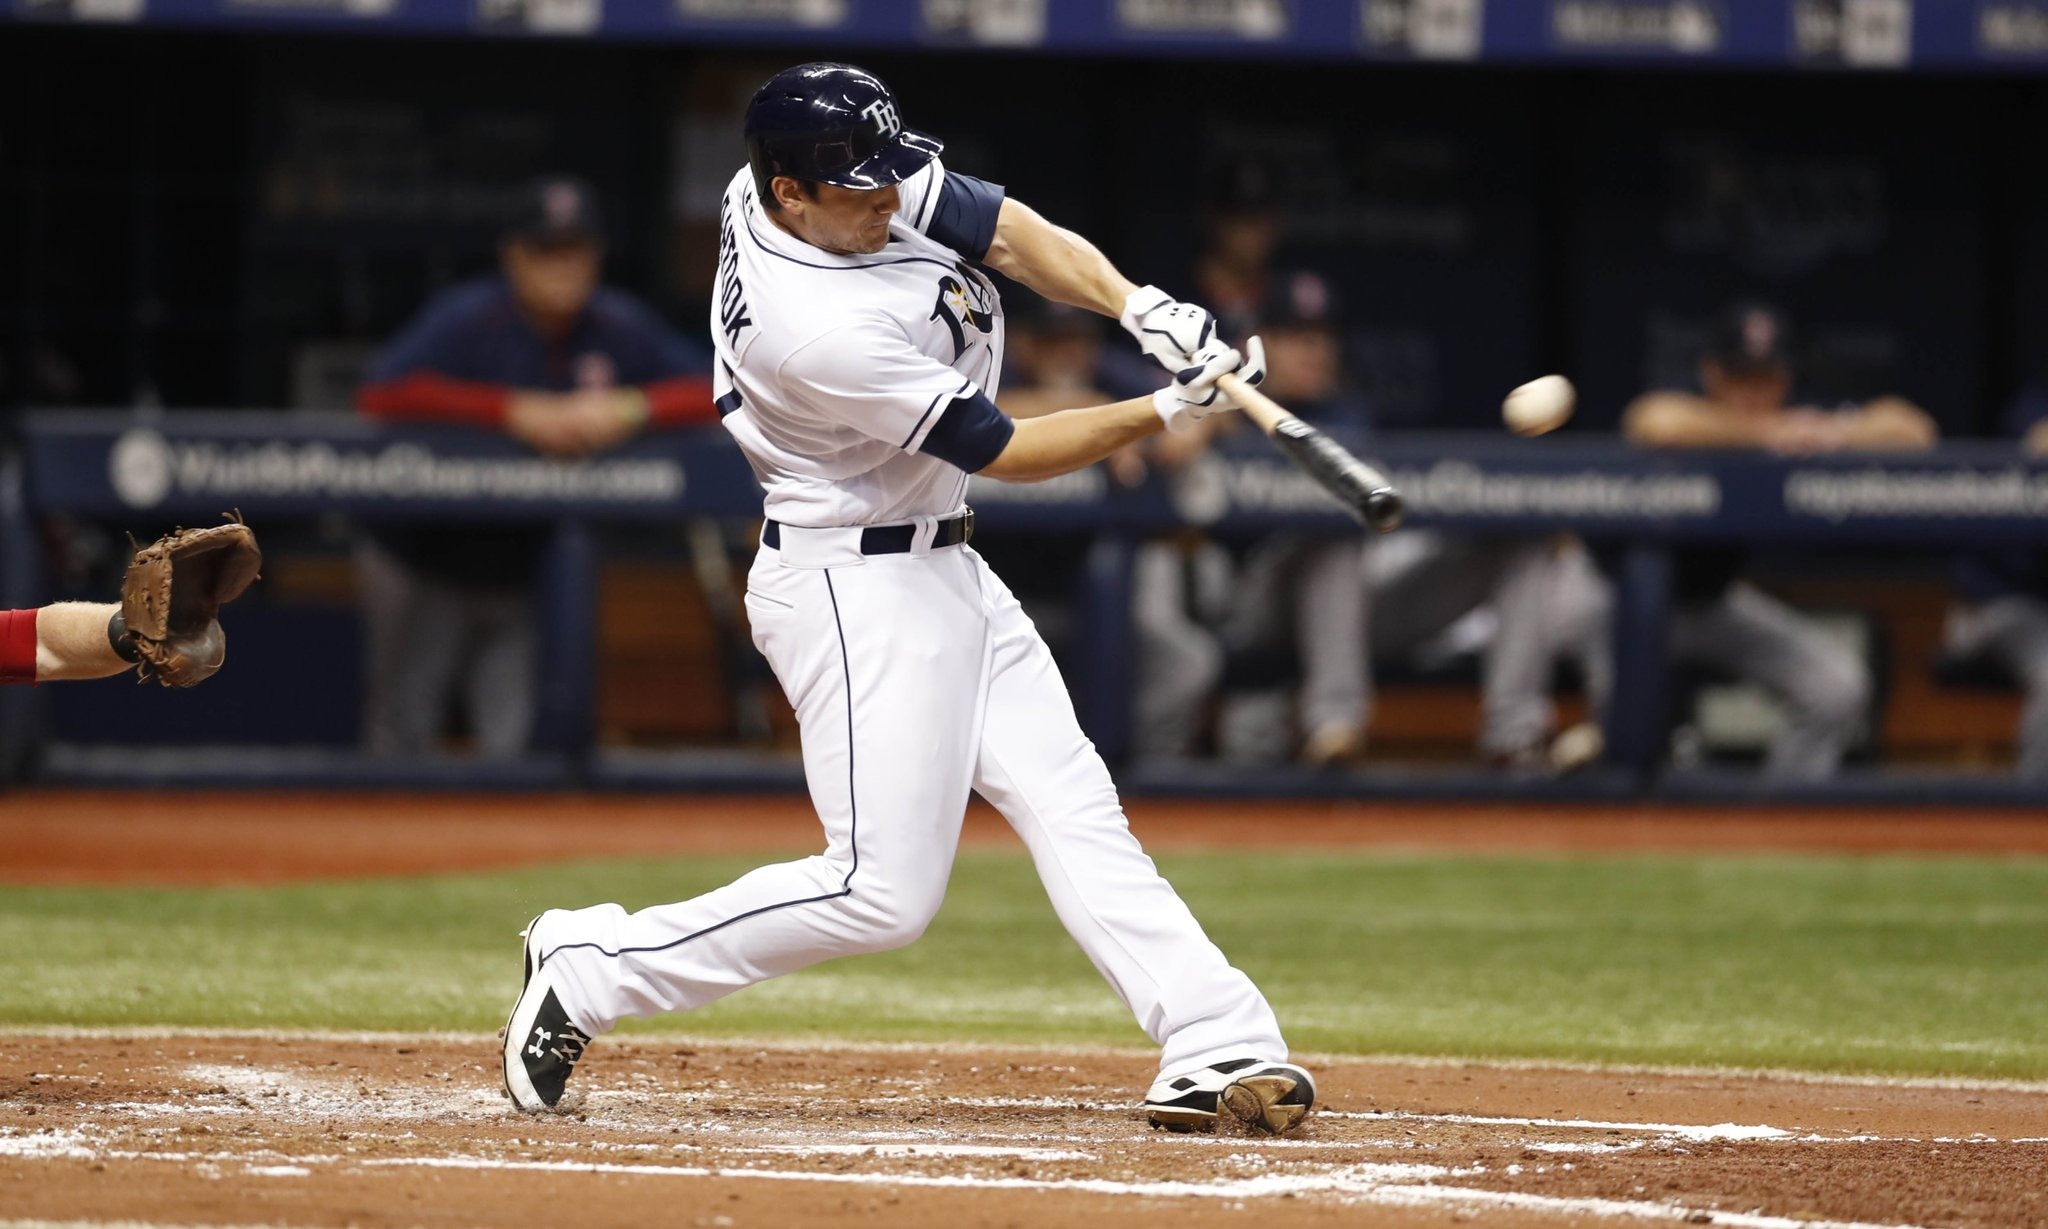 Mikie Mattock's solo shot accounted for the Rays only run Friday night. (Photo Credit: Tampa Bay Rays)